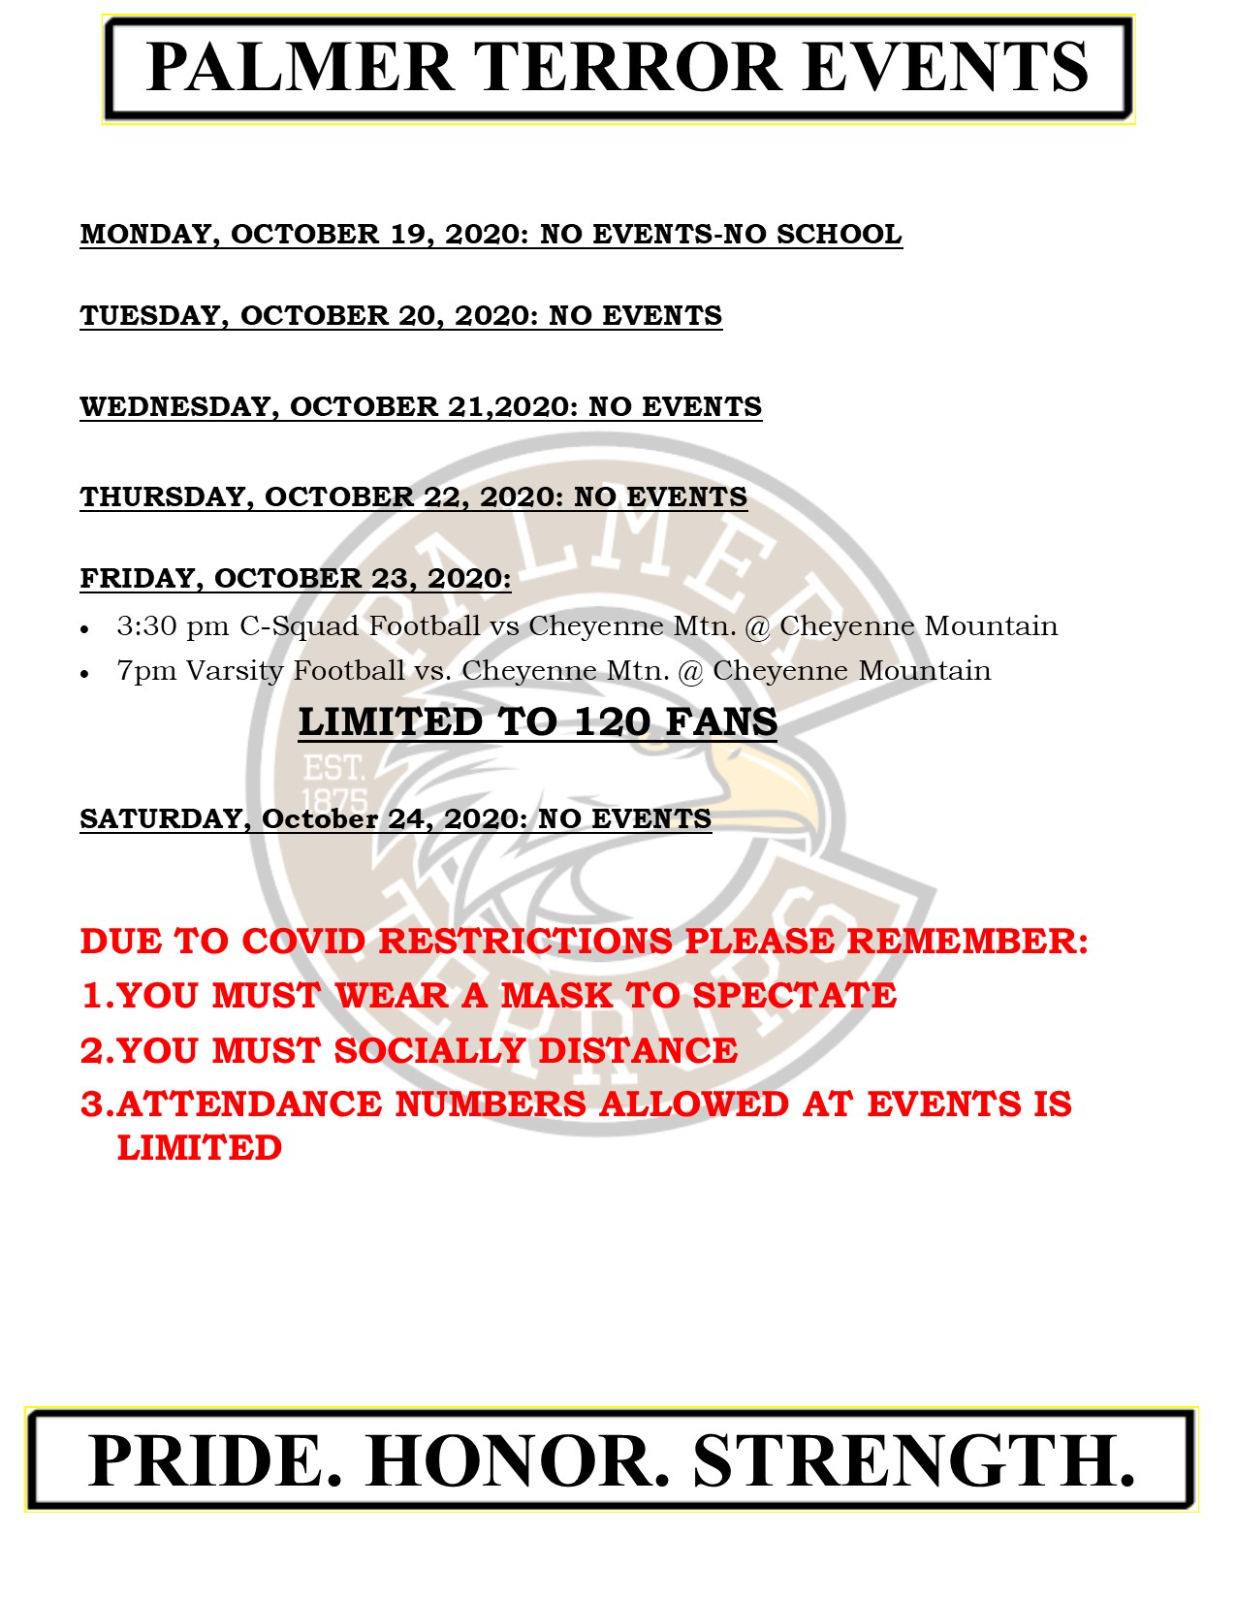 PALMER EVENTS – October 19 – 24, 2020 – PLEASE READ FOR INFO ON GAME ADMISSION!!